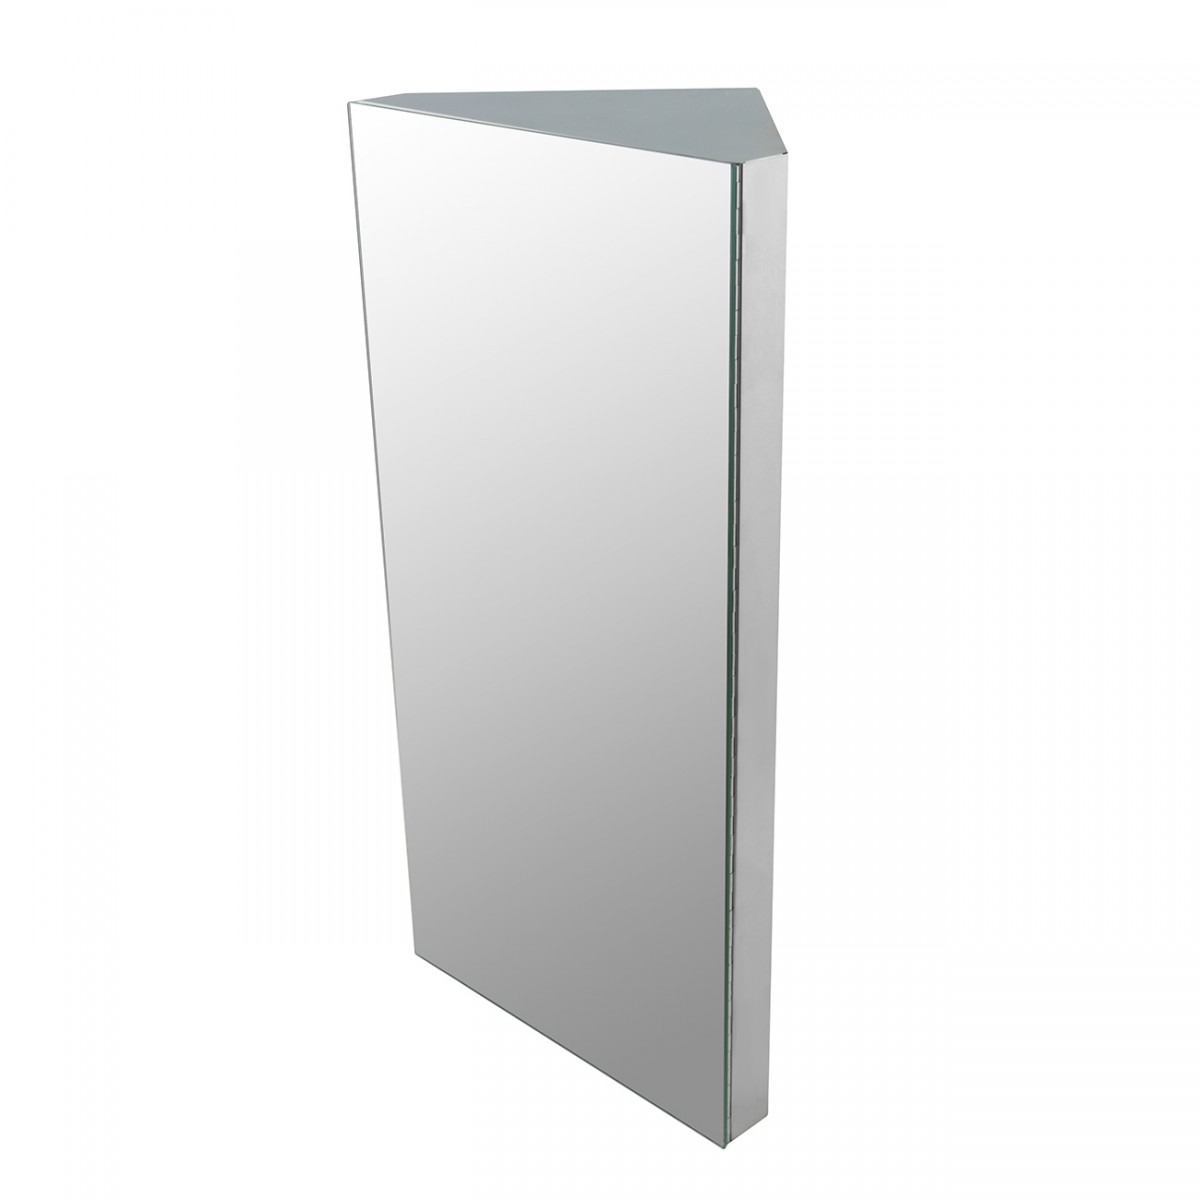 stainless steel medicine cabinet corner wall mount - brushed stainless steel medicine cabinet corner wall mount